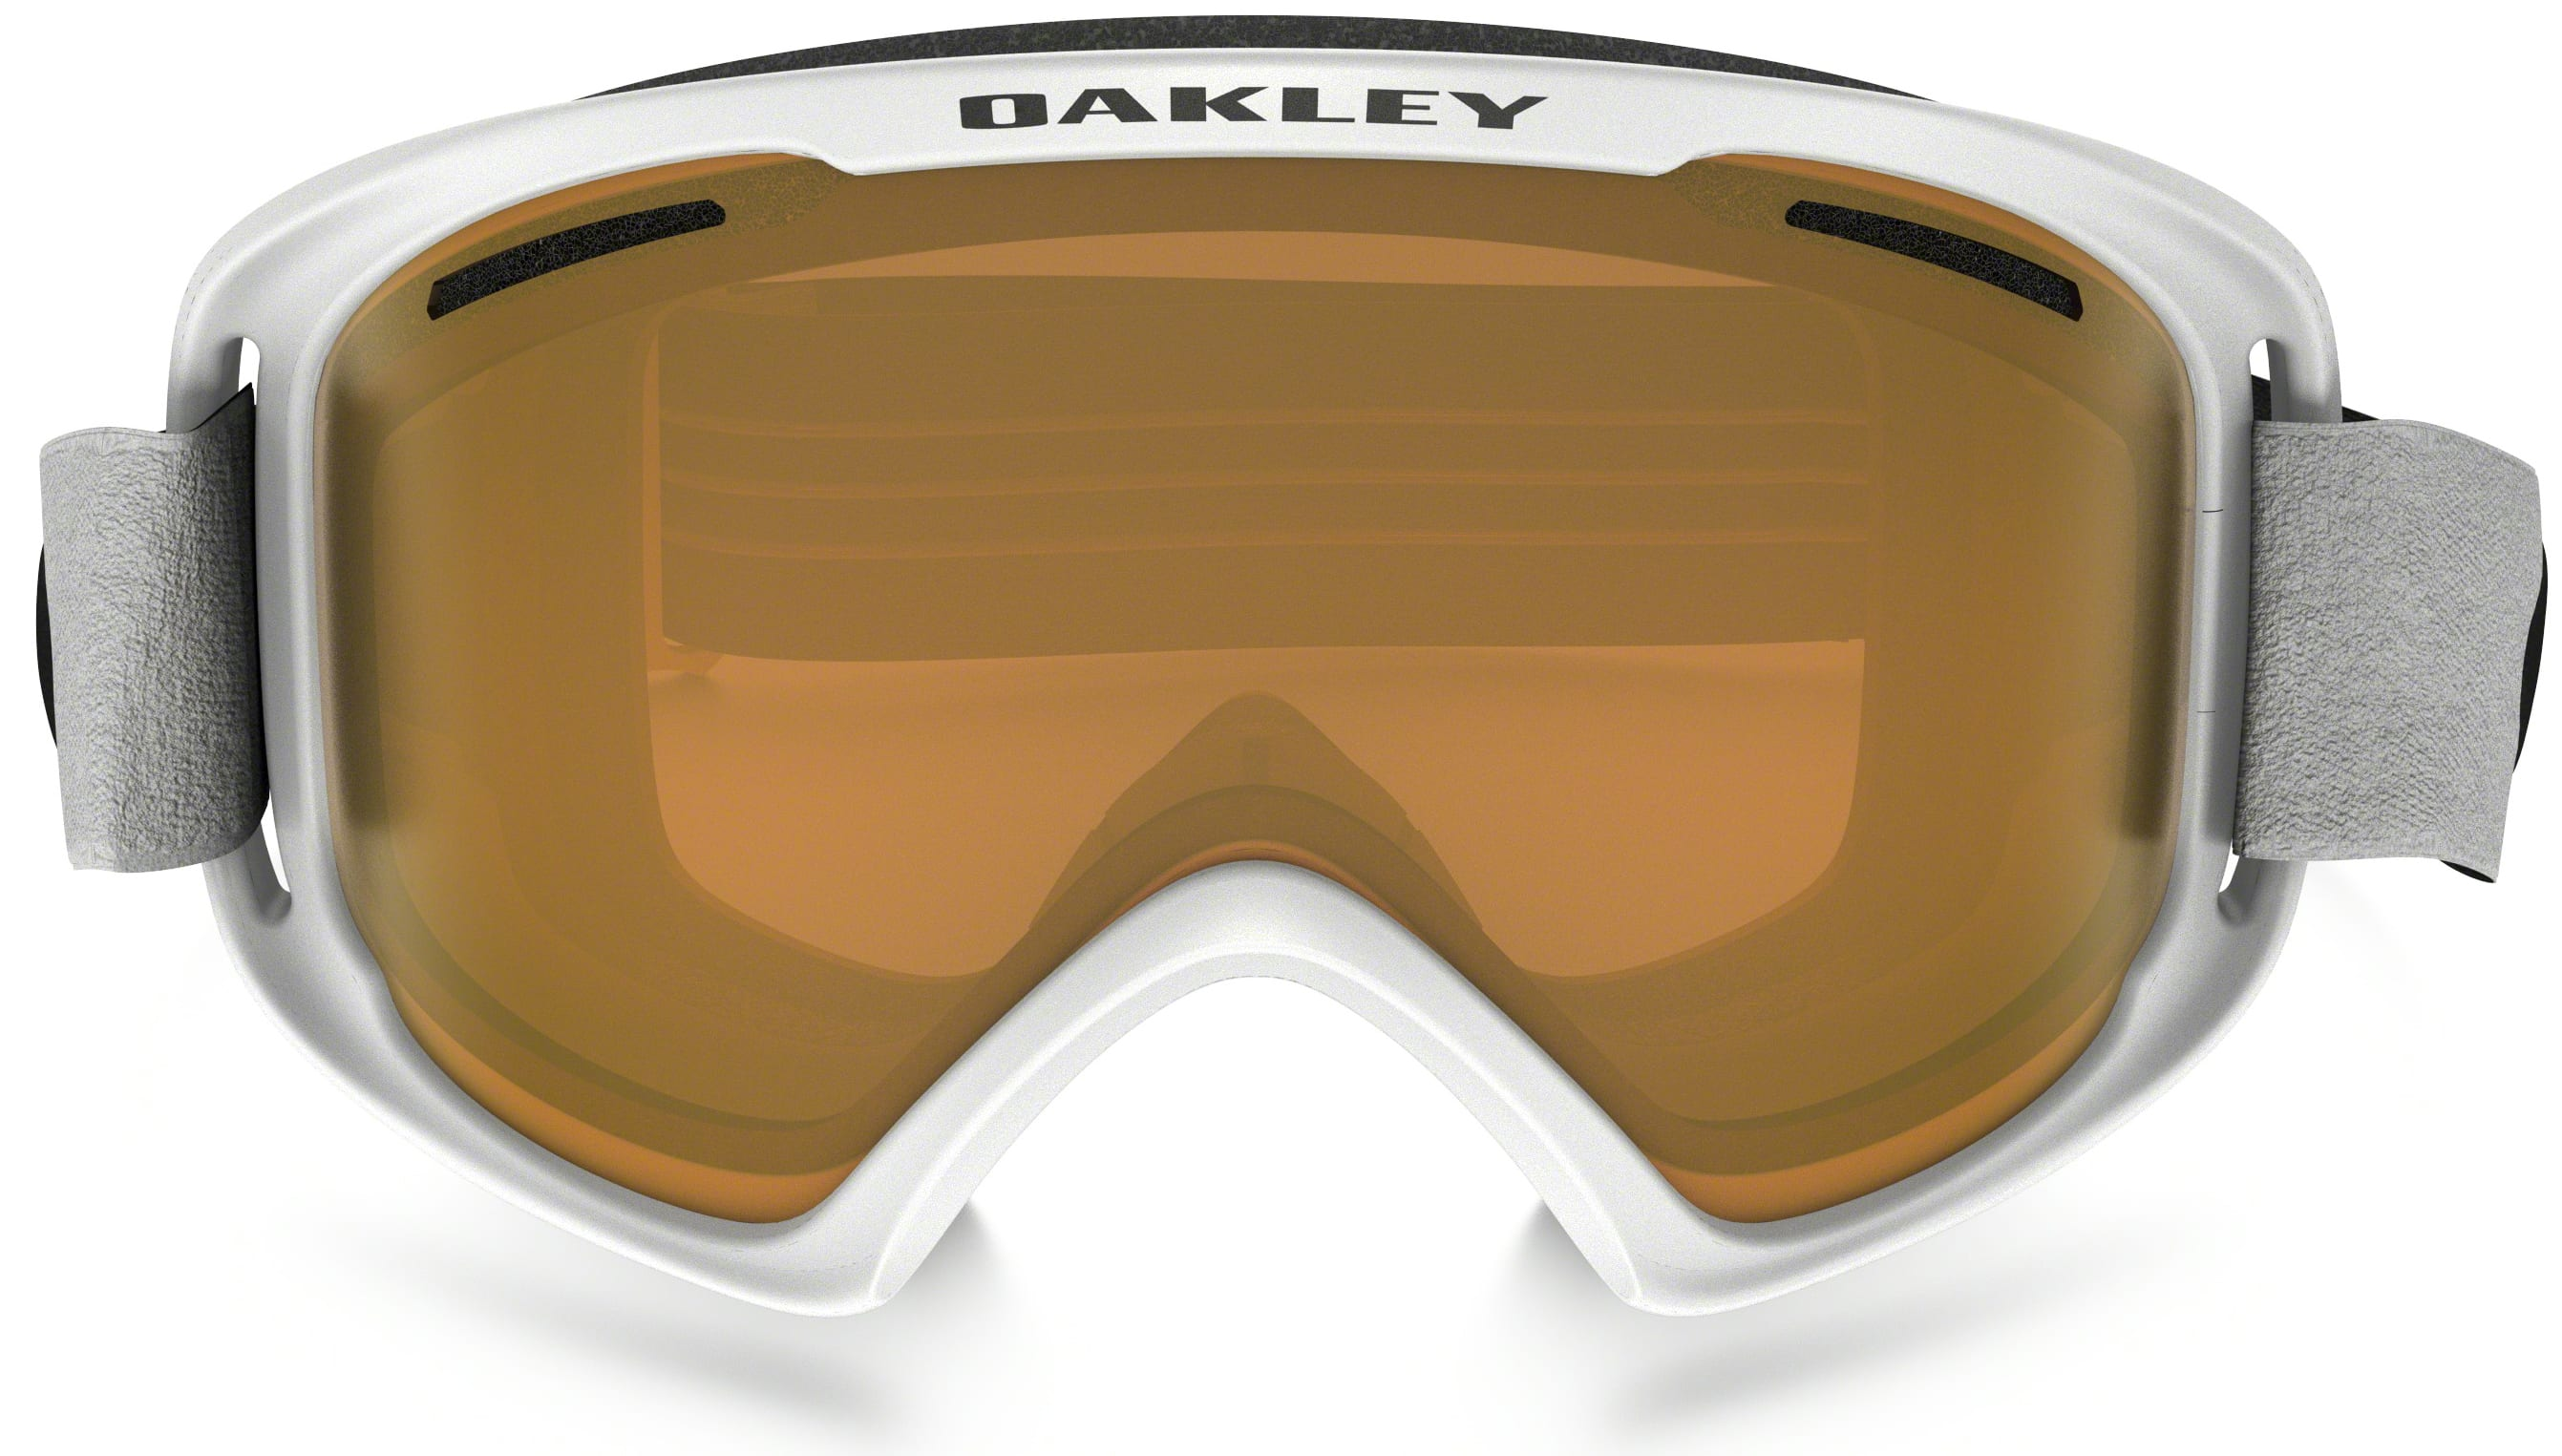 629b8f5958d6b Oakley O Frame 2.0 XL (Asian Fit) Goggles - thumbnail 2